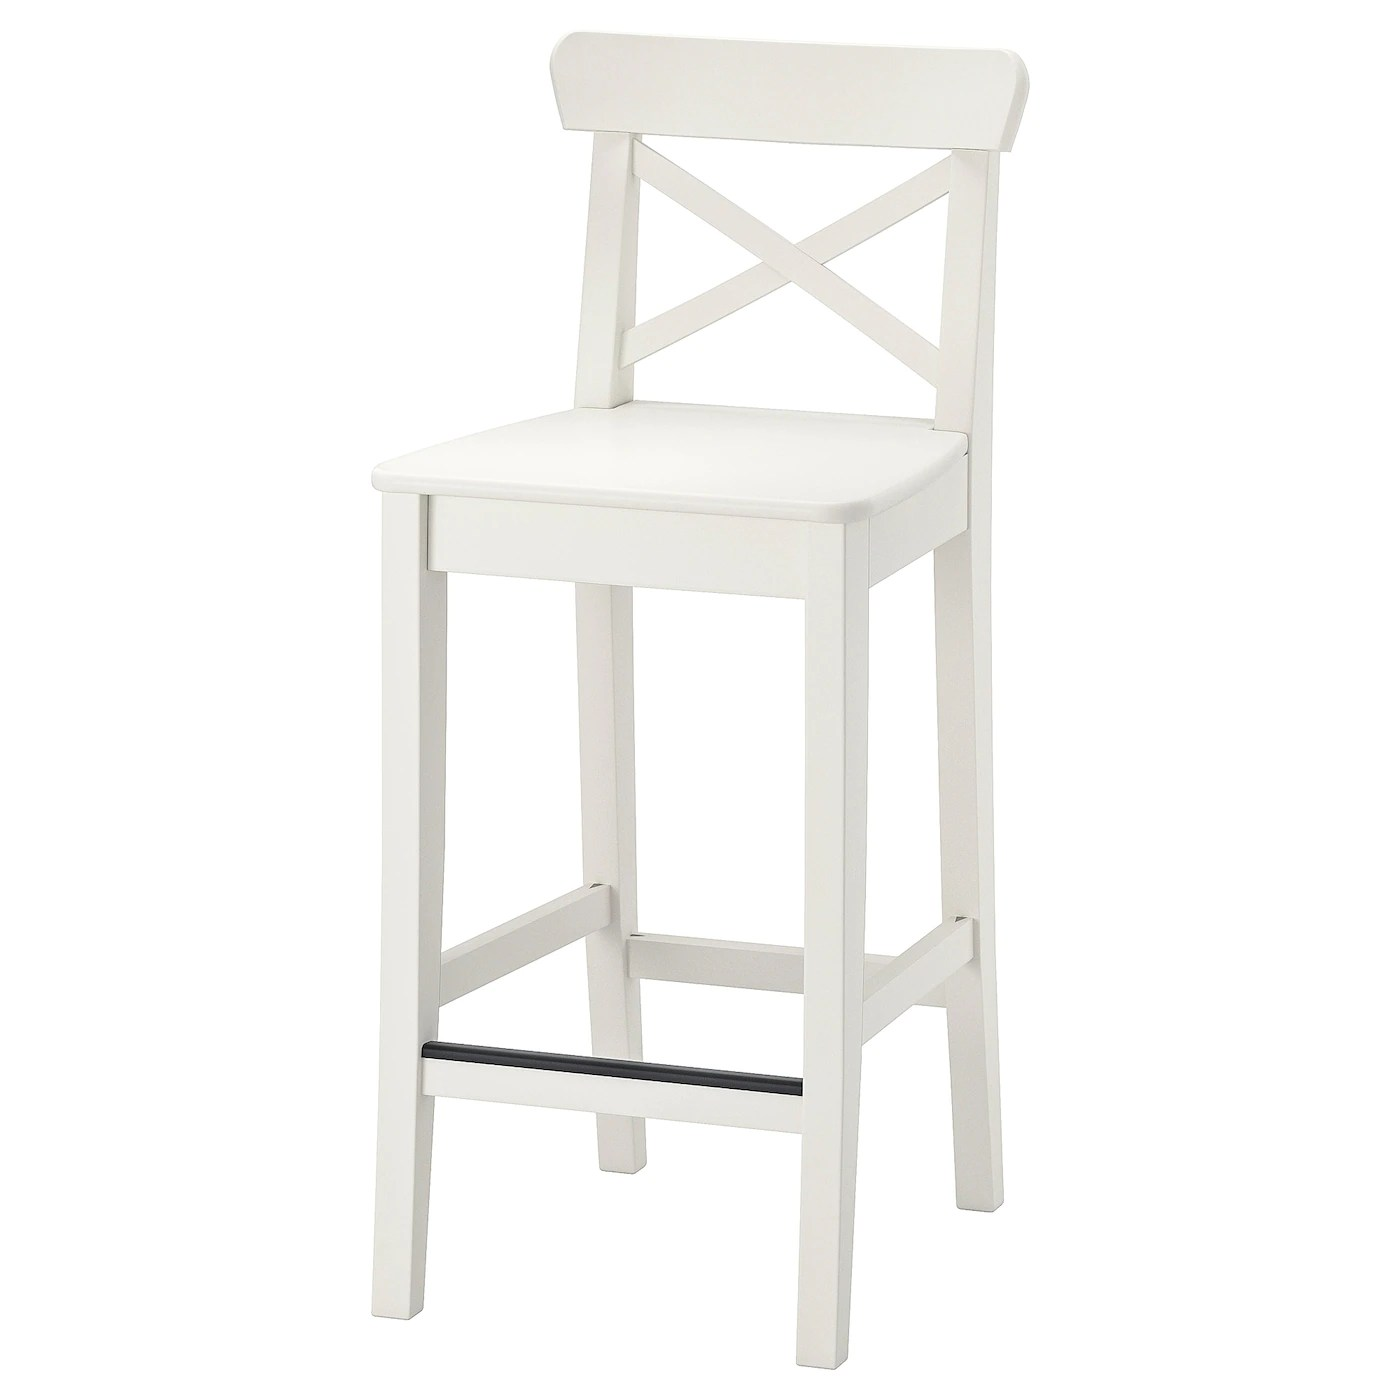 Ingolf White Bar Stool With Backrest 63 Cm Ikea